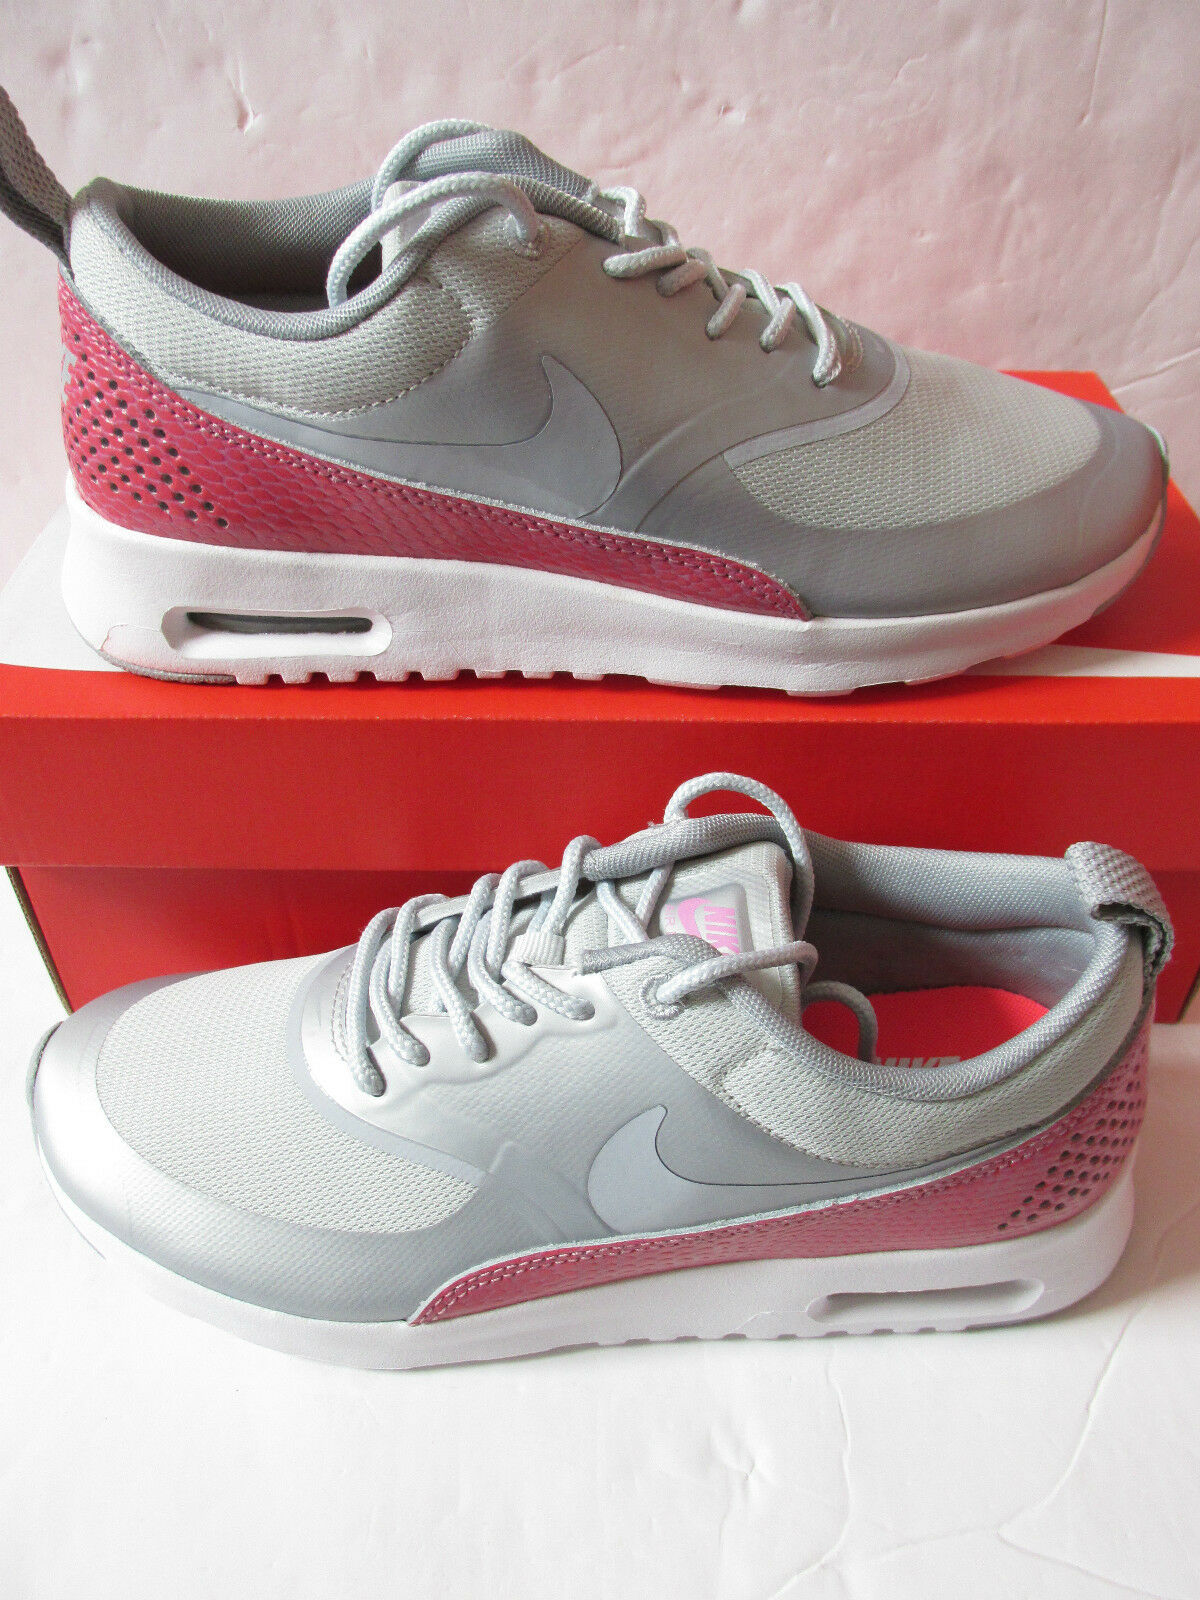 nike Femme air max THEA PRM Baskets running trainers 616723 016 Baskets PRM chaussures 70847b